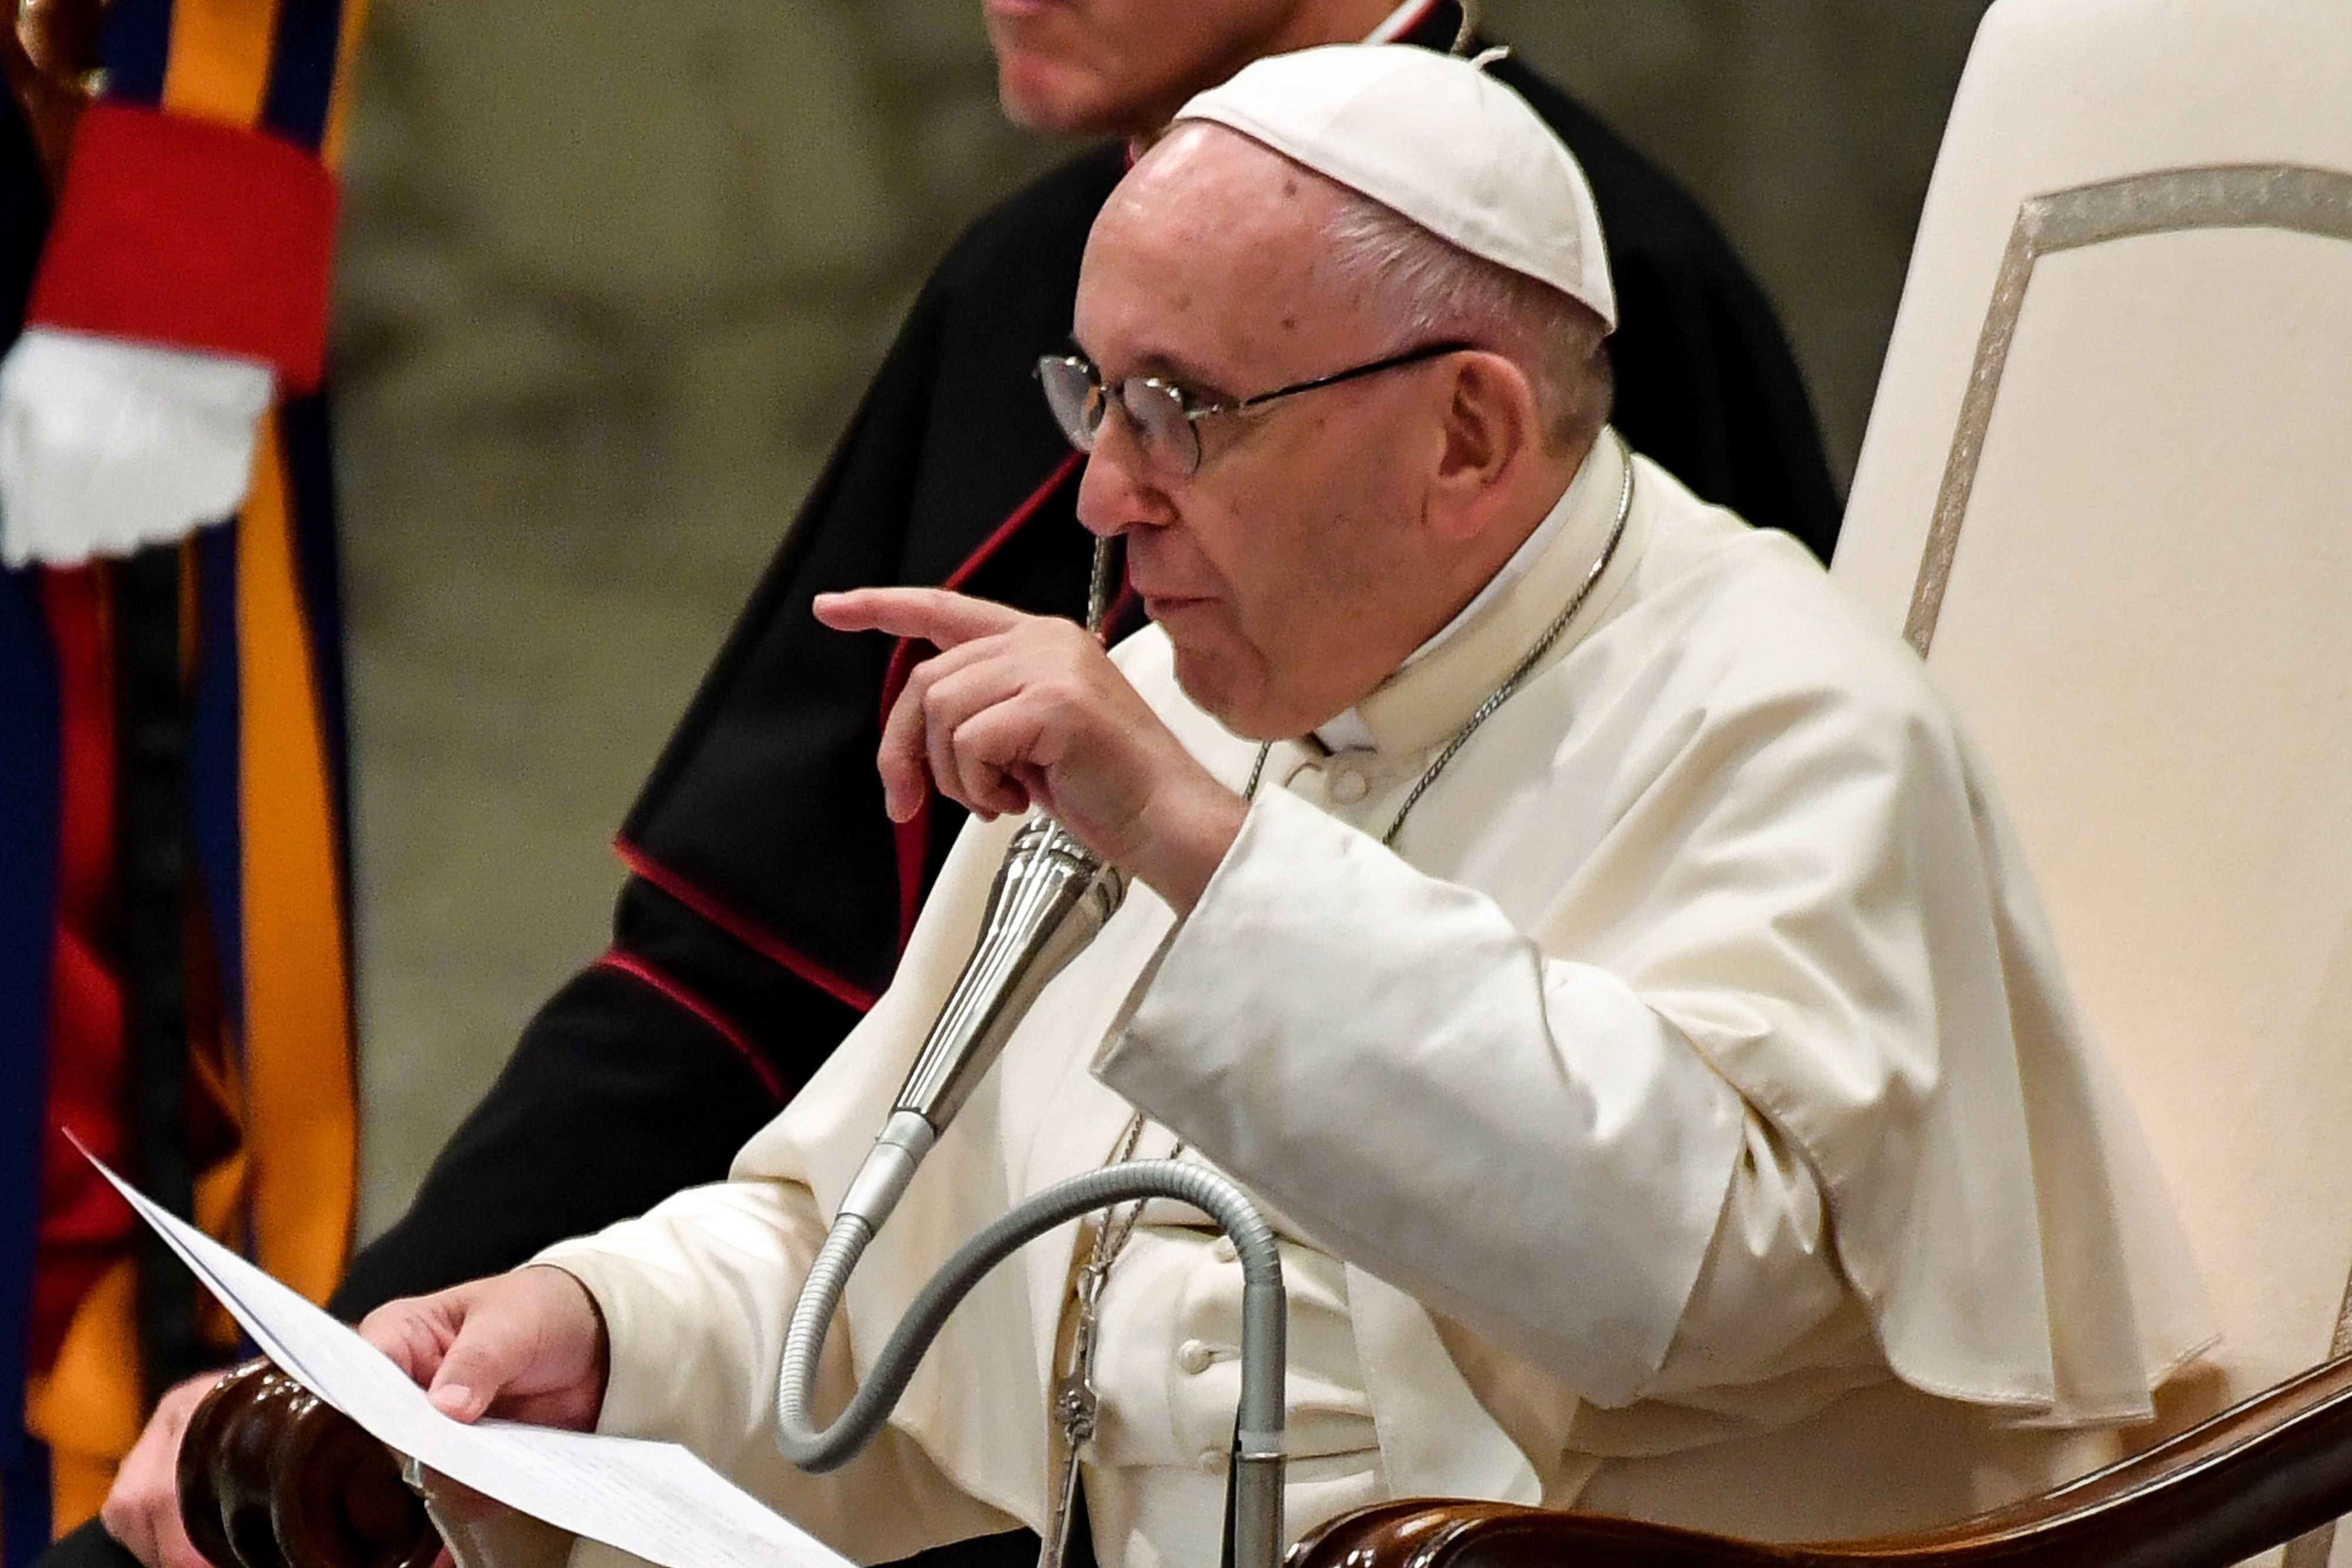 Pope Francis speaks during his weekly general audience at Aula Paolo VI (Paul VI Audience Hall) at the Vatican on August 1, 2018. (Photo by Andreas SOLARO / AFP)        (Photo credit should read ANDREAS SOLARO/AFP/Getty Images)